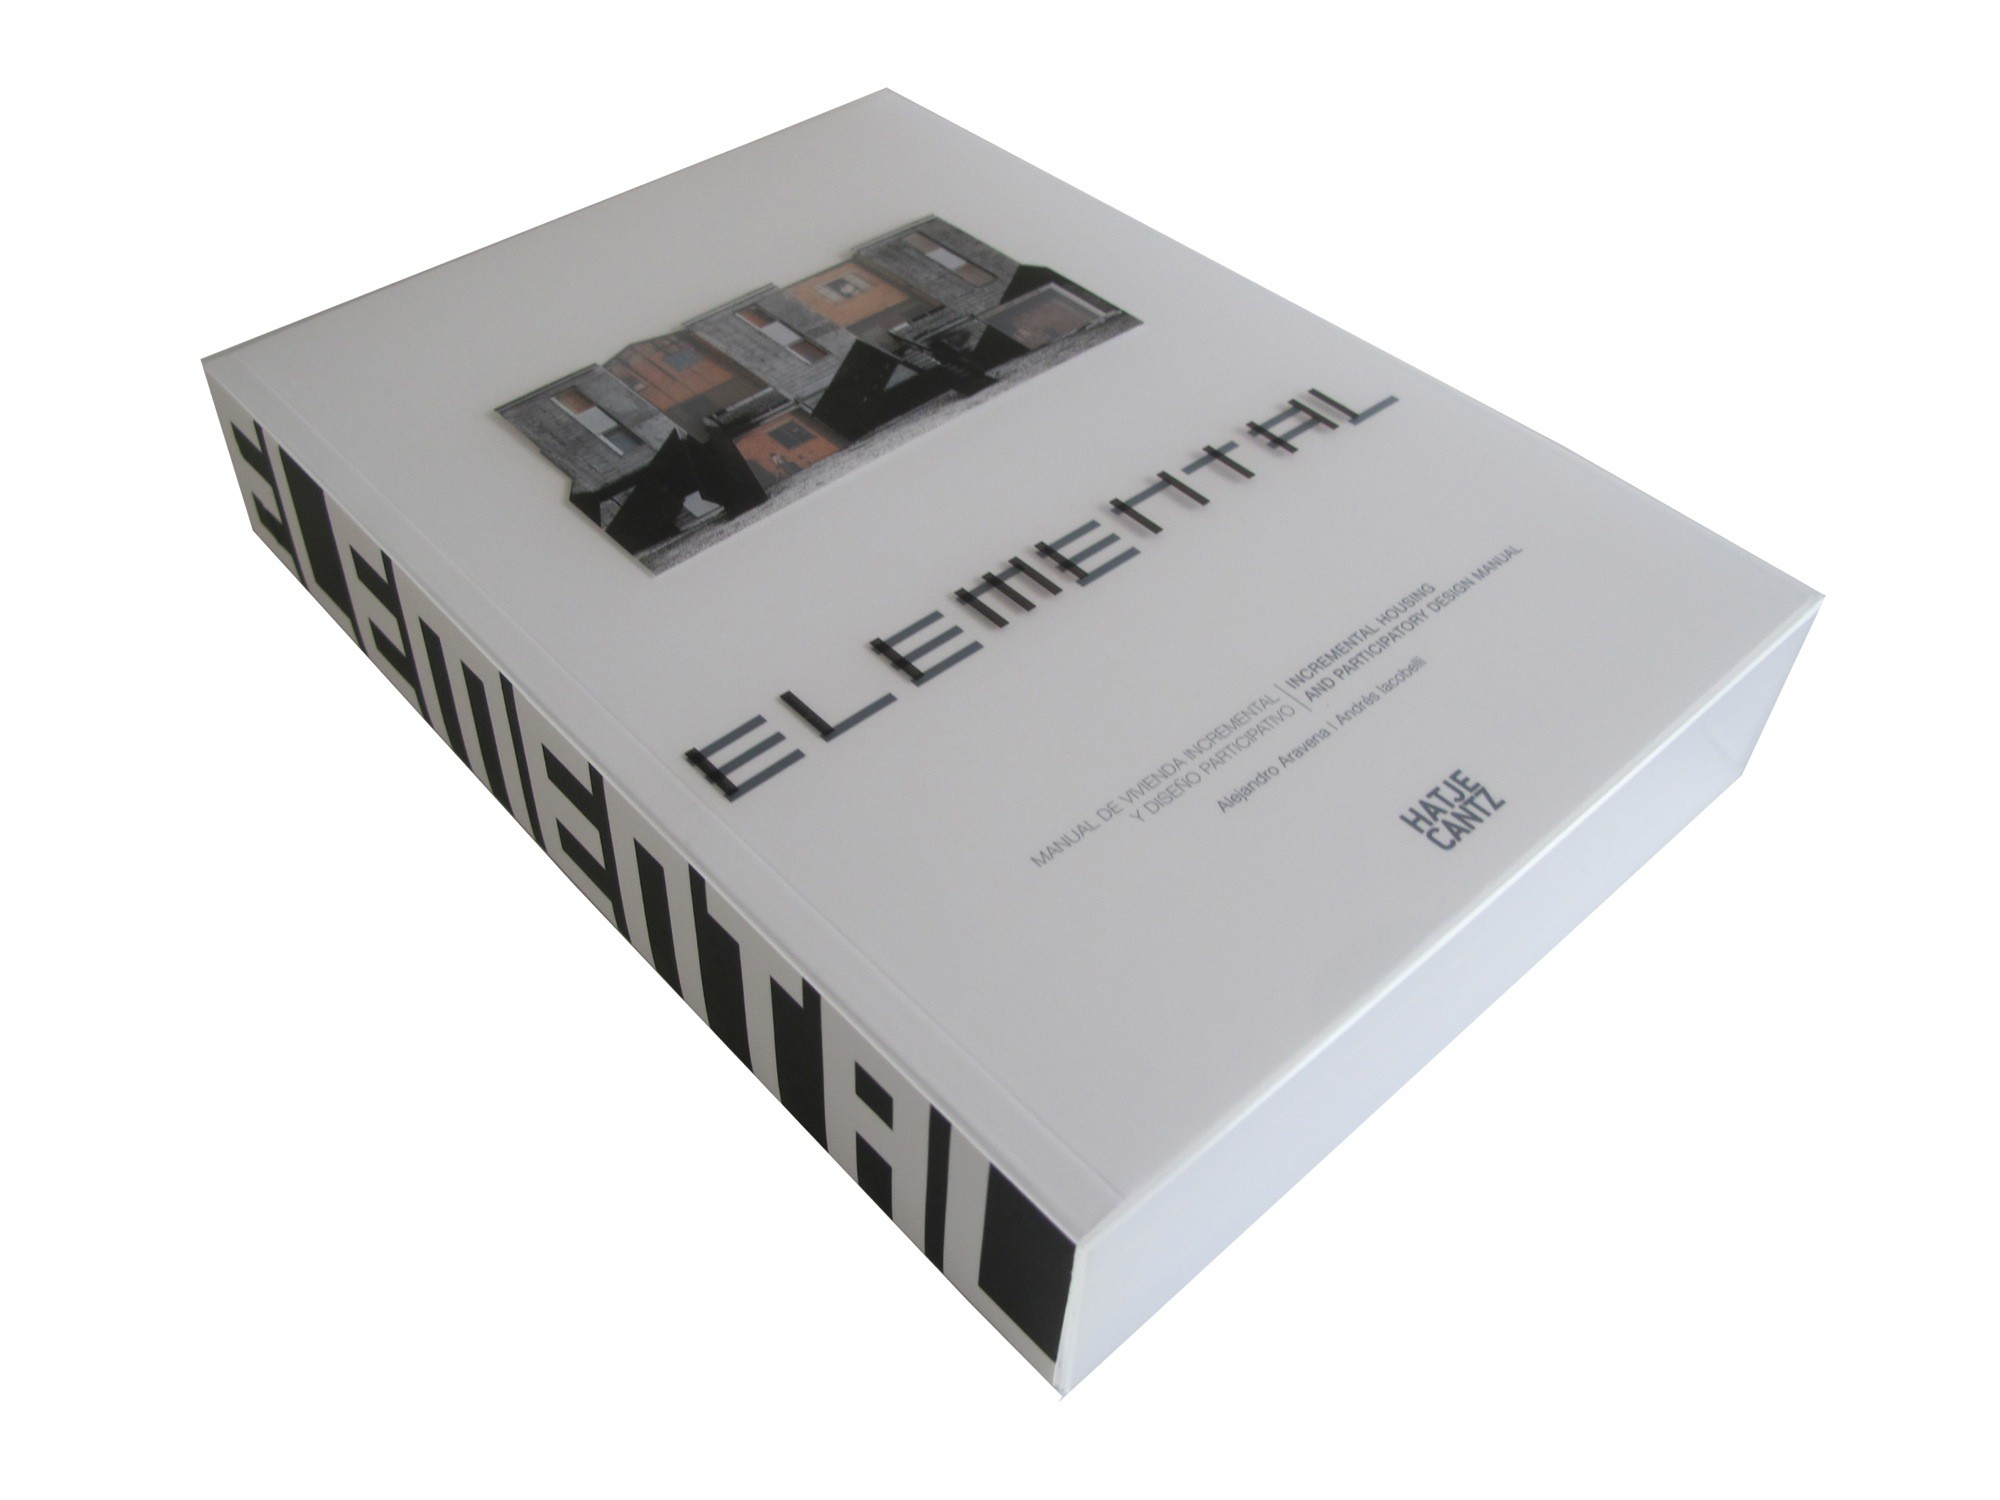 ELEMENTAL: Manual de Vivienda Incremental y Diseño Participativo, Cortesia de ELEMENTAL